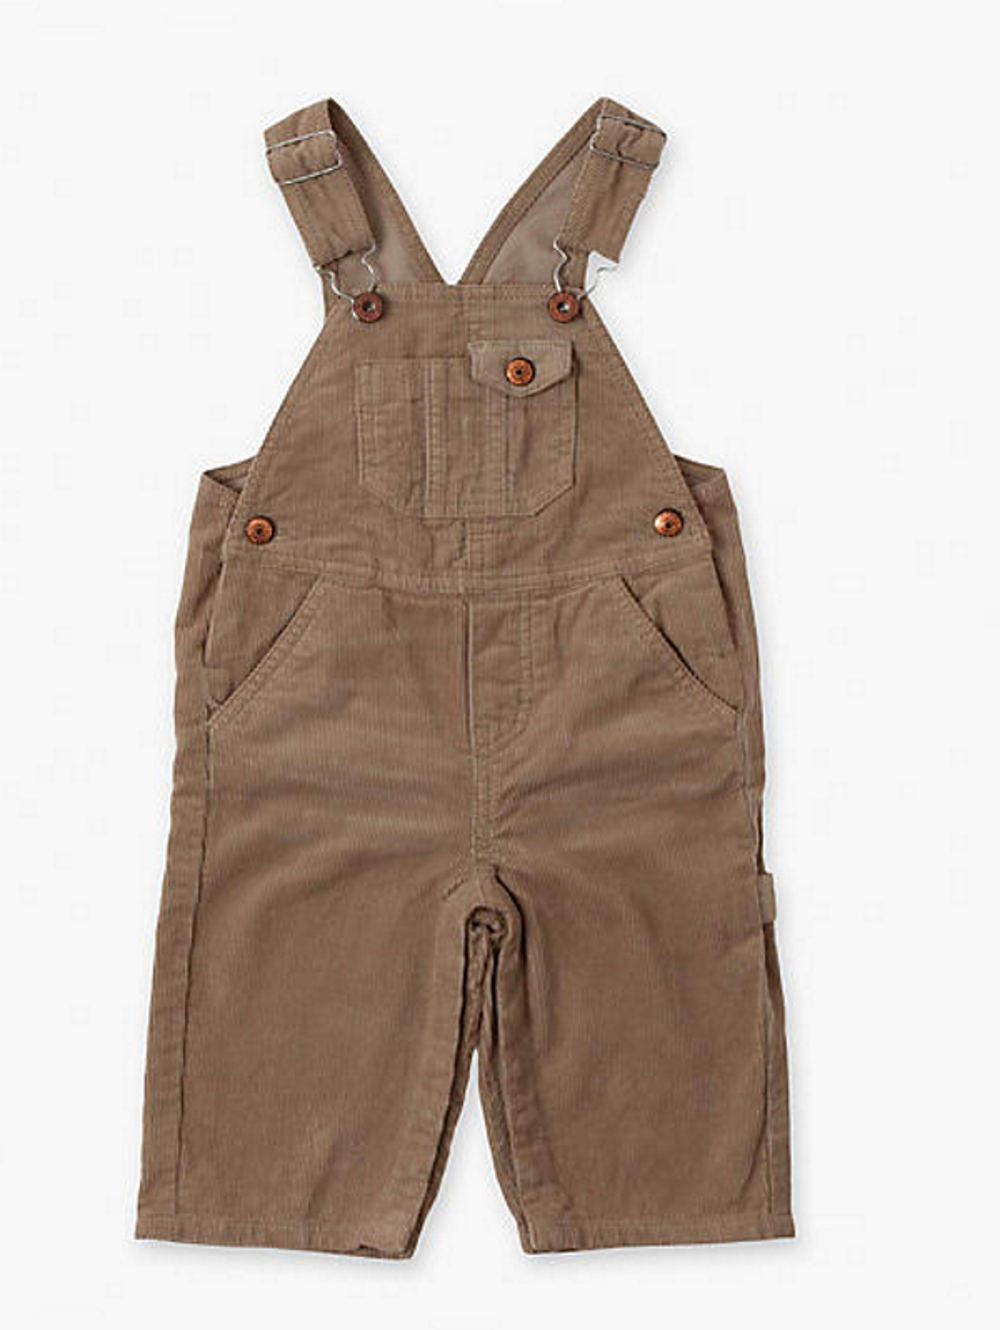 Big Boys' Denim Bib Overall 100% Cotton With Hammer Loop & Tool Pockets